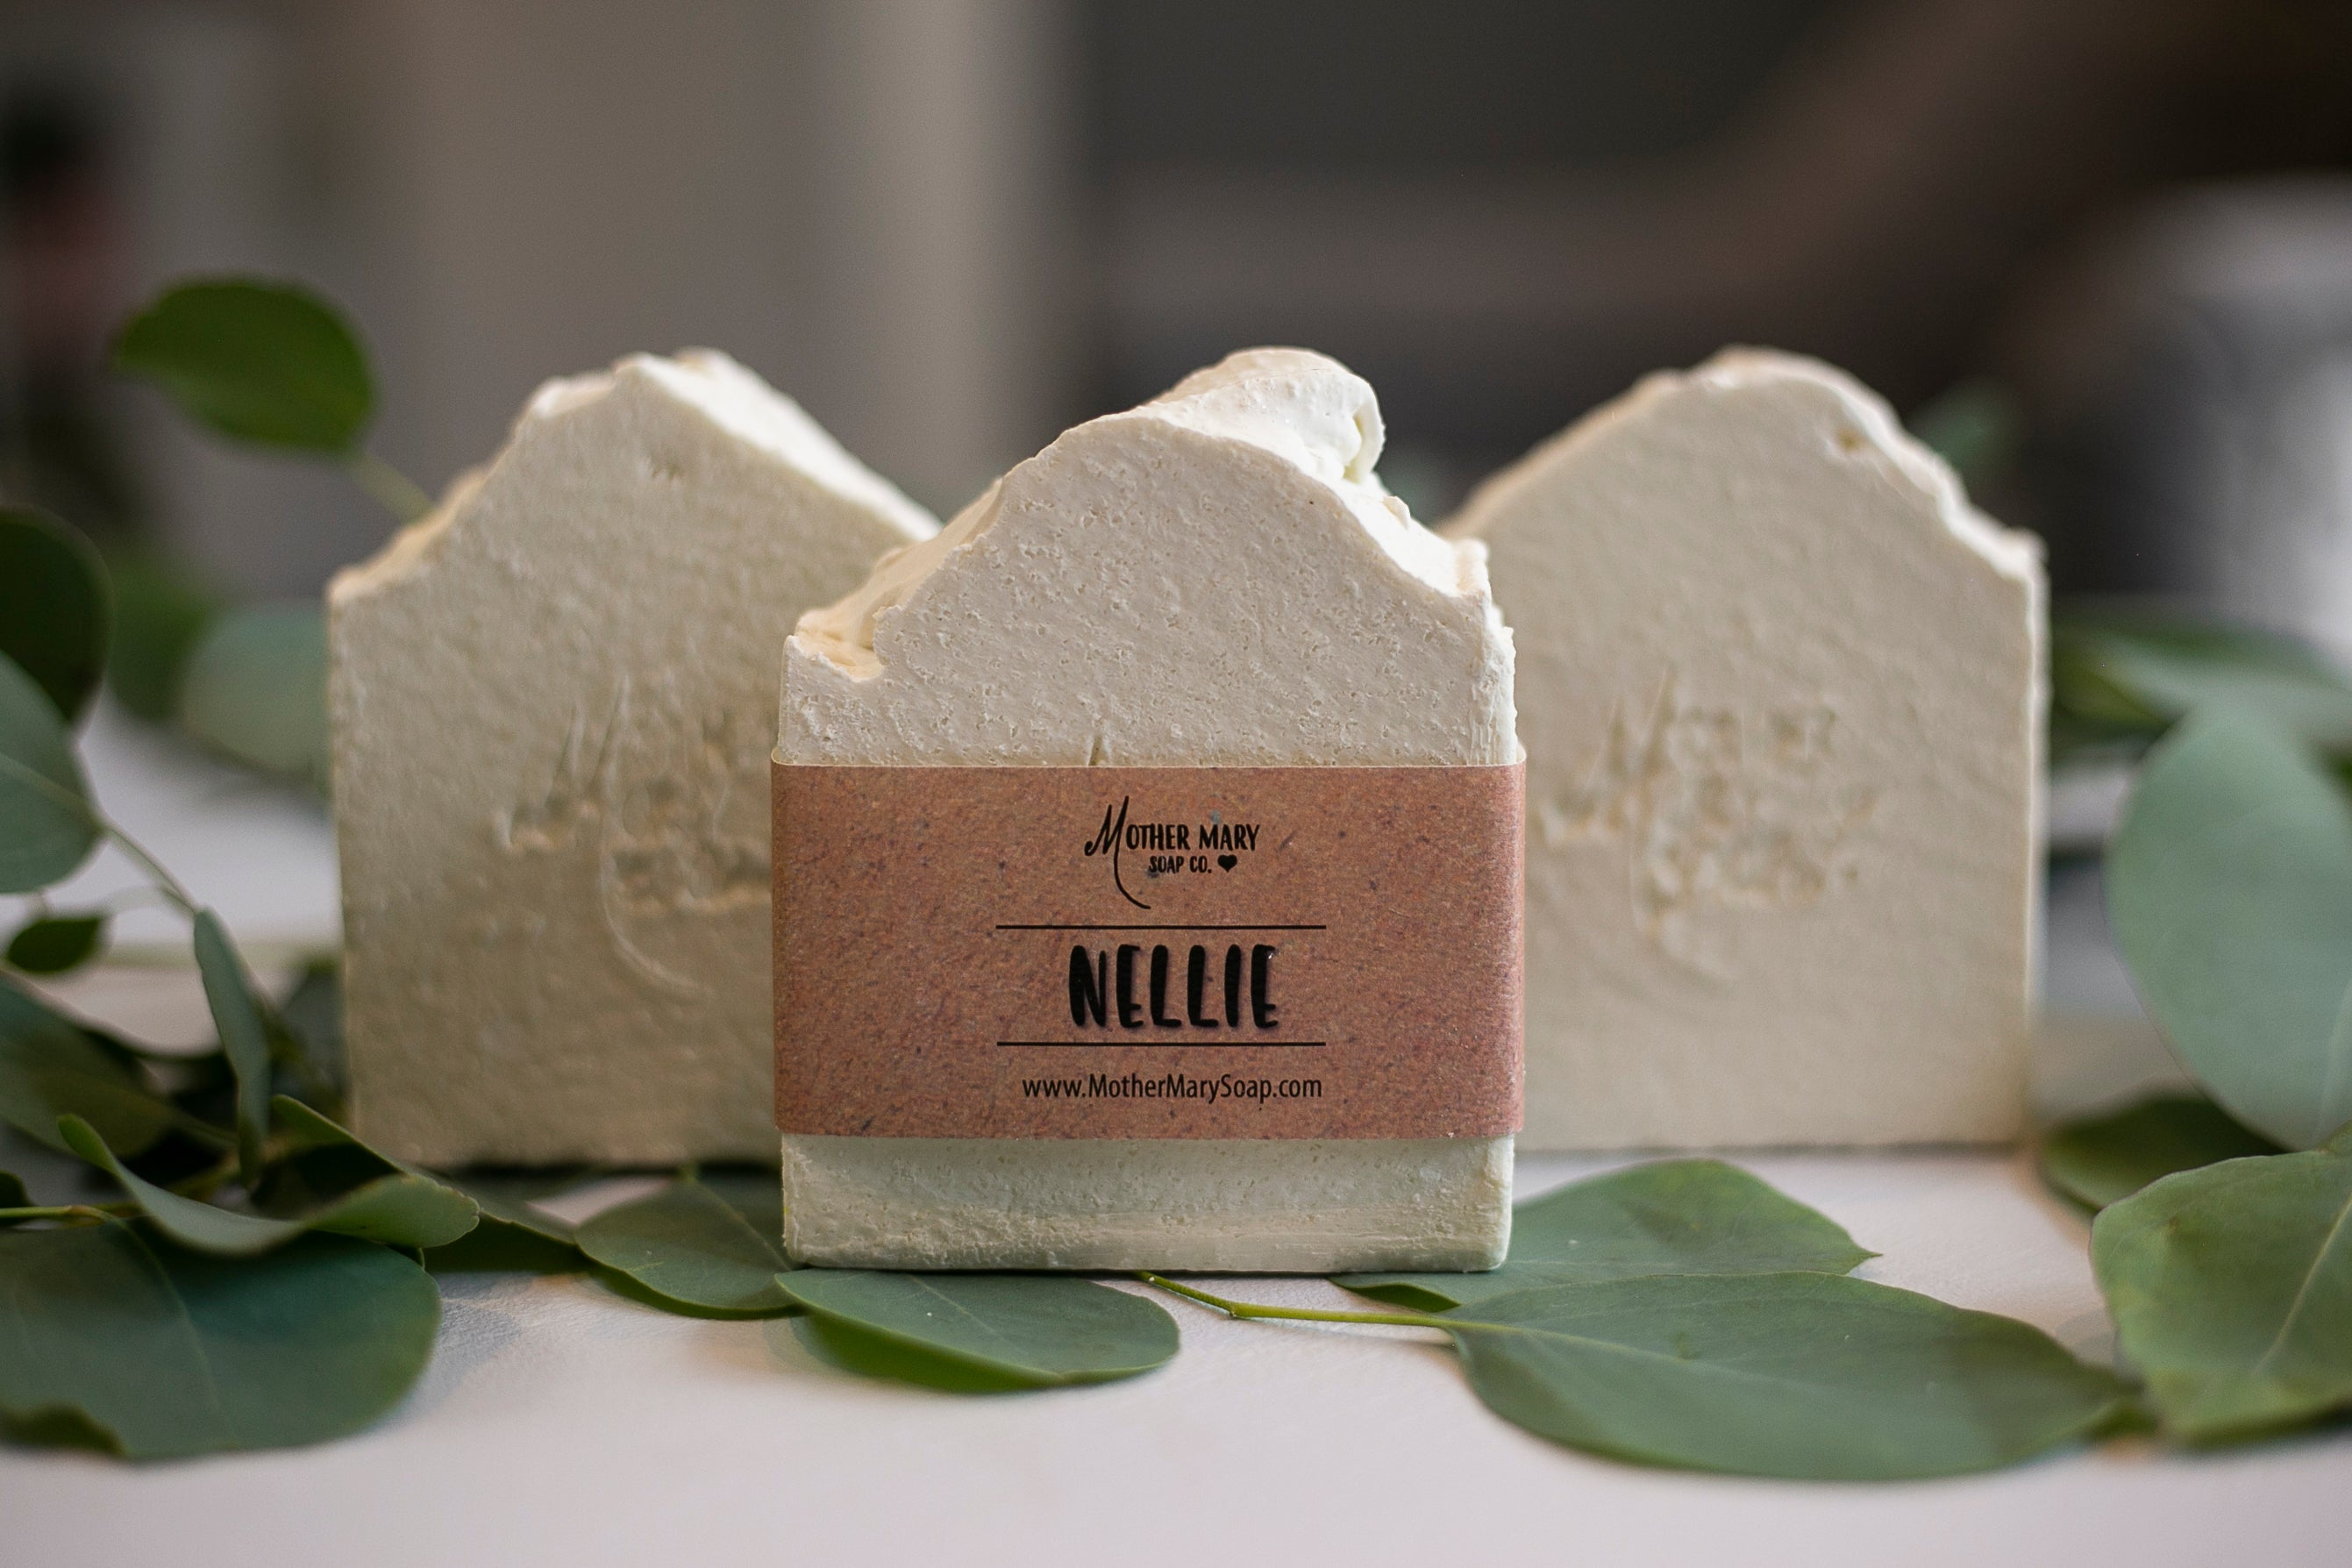 Nellie Soap - Mother Mary Soap Company